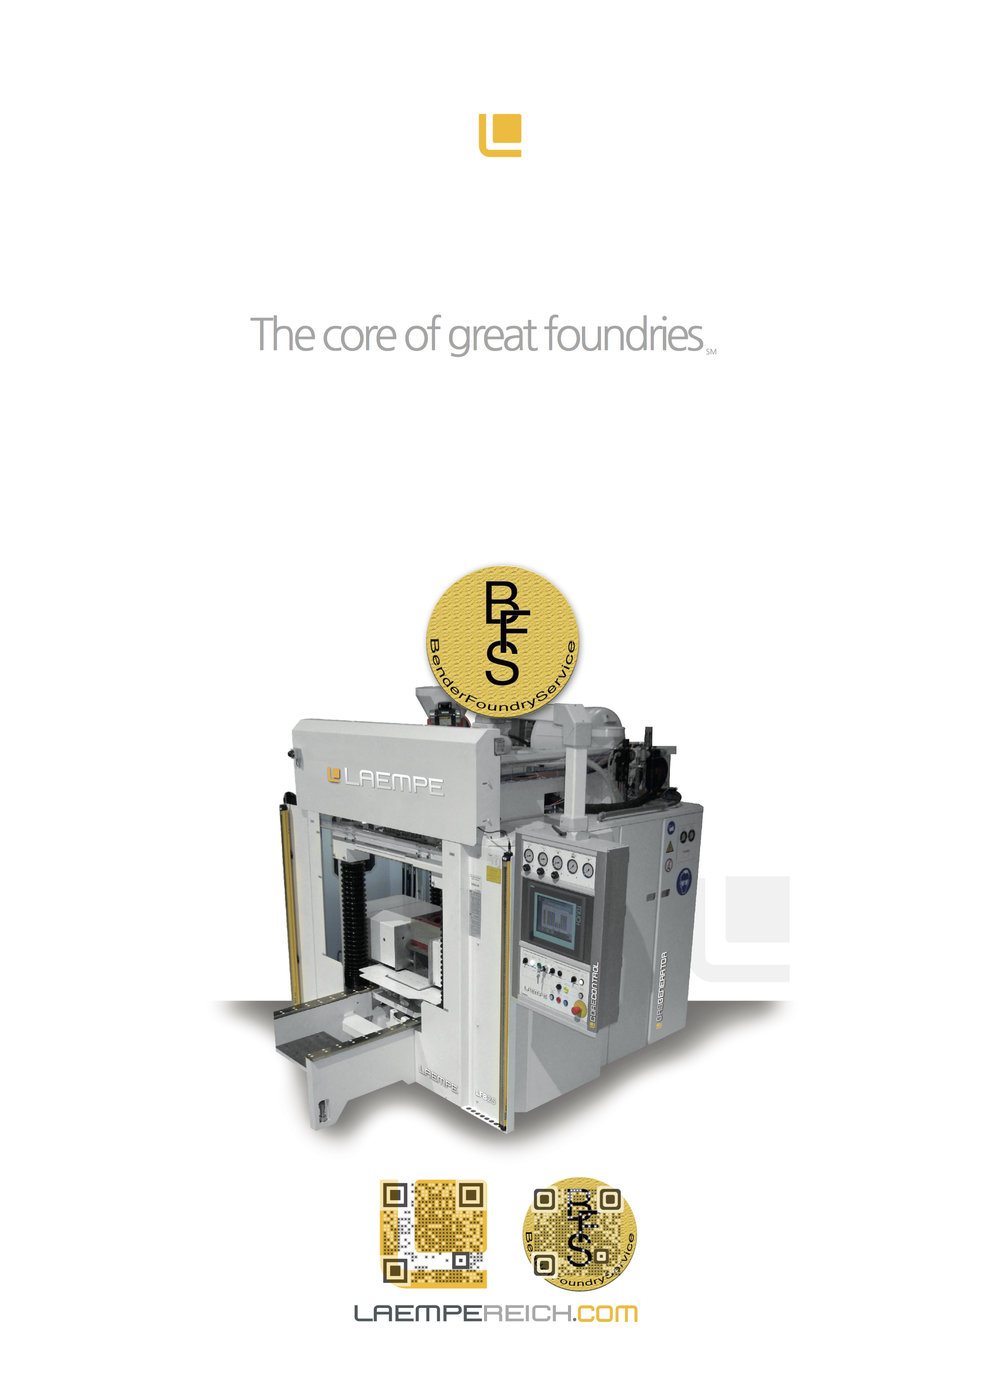 Bender - LB25 2015 -  The Core of Great Foundries.jpg